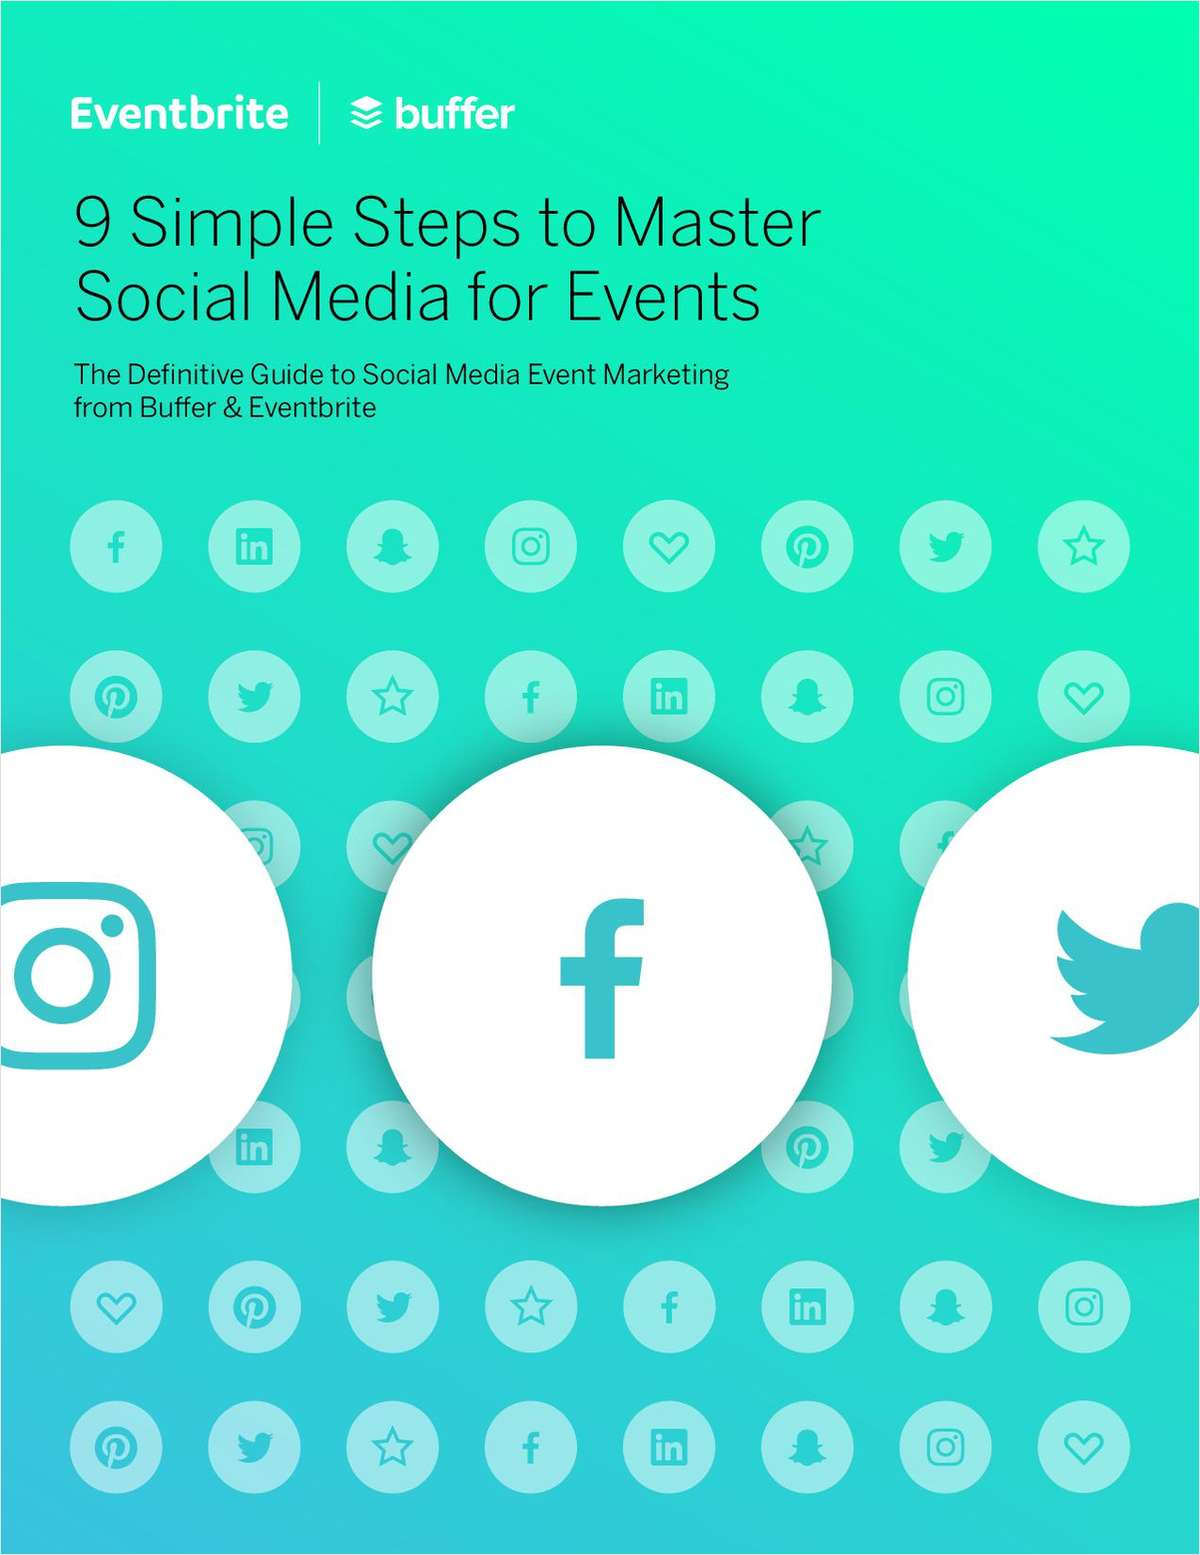 9 Simple Steps to Master Social Media for Events